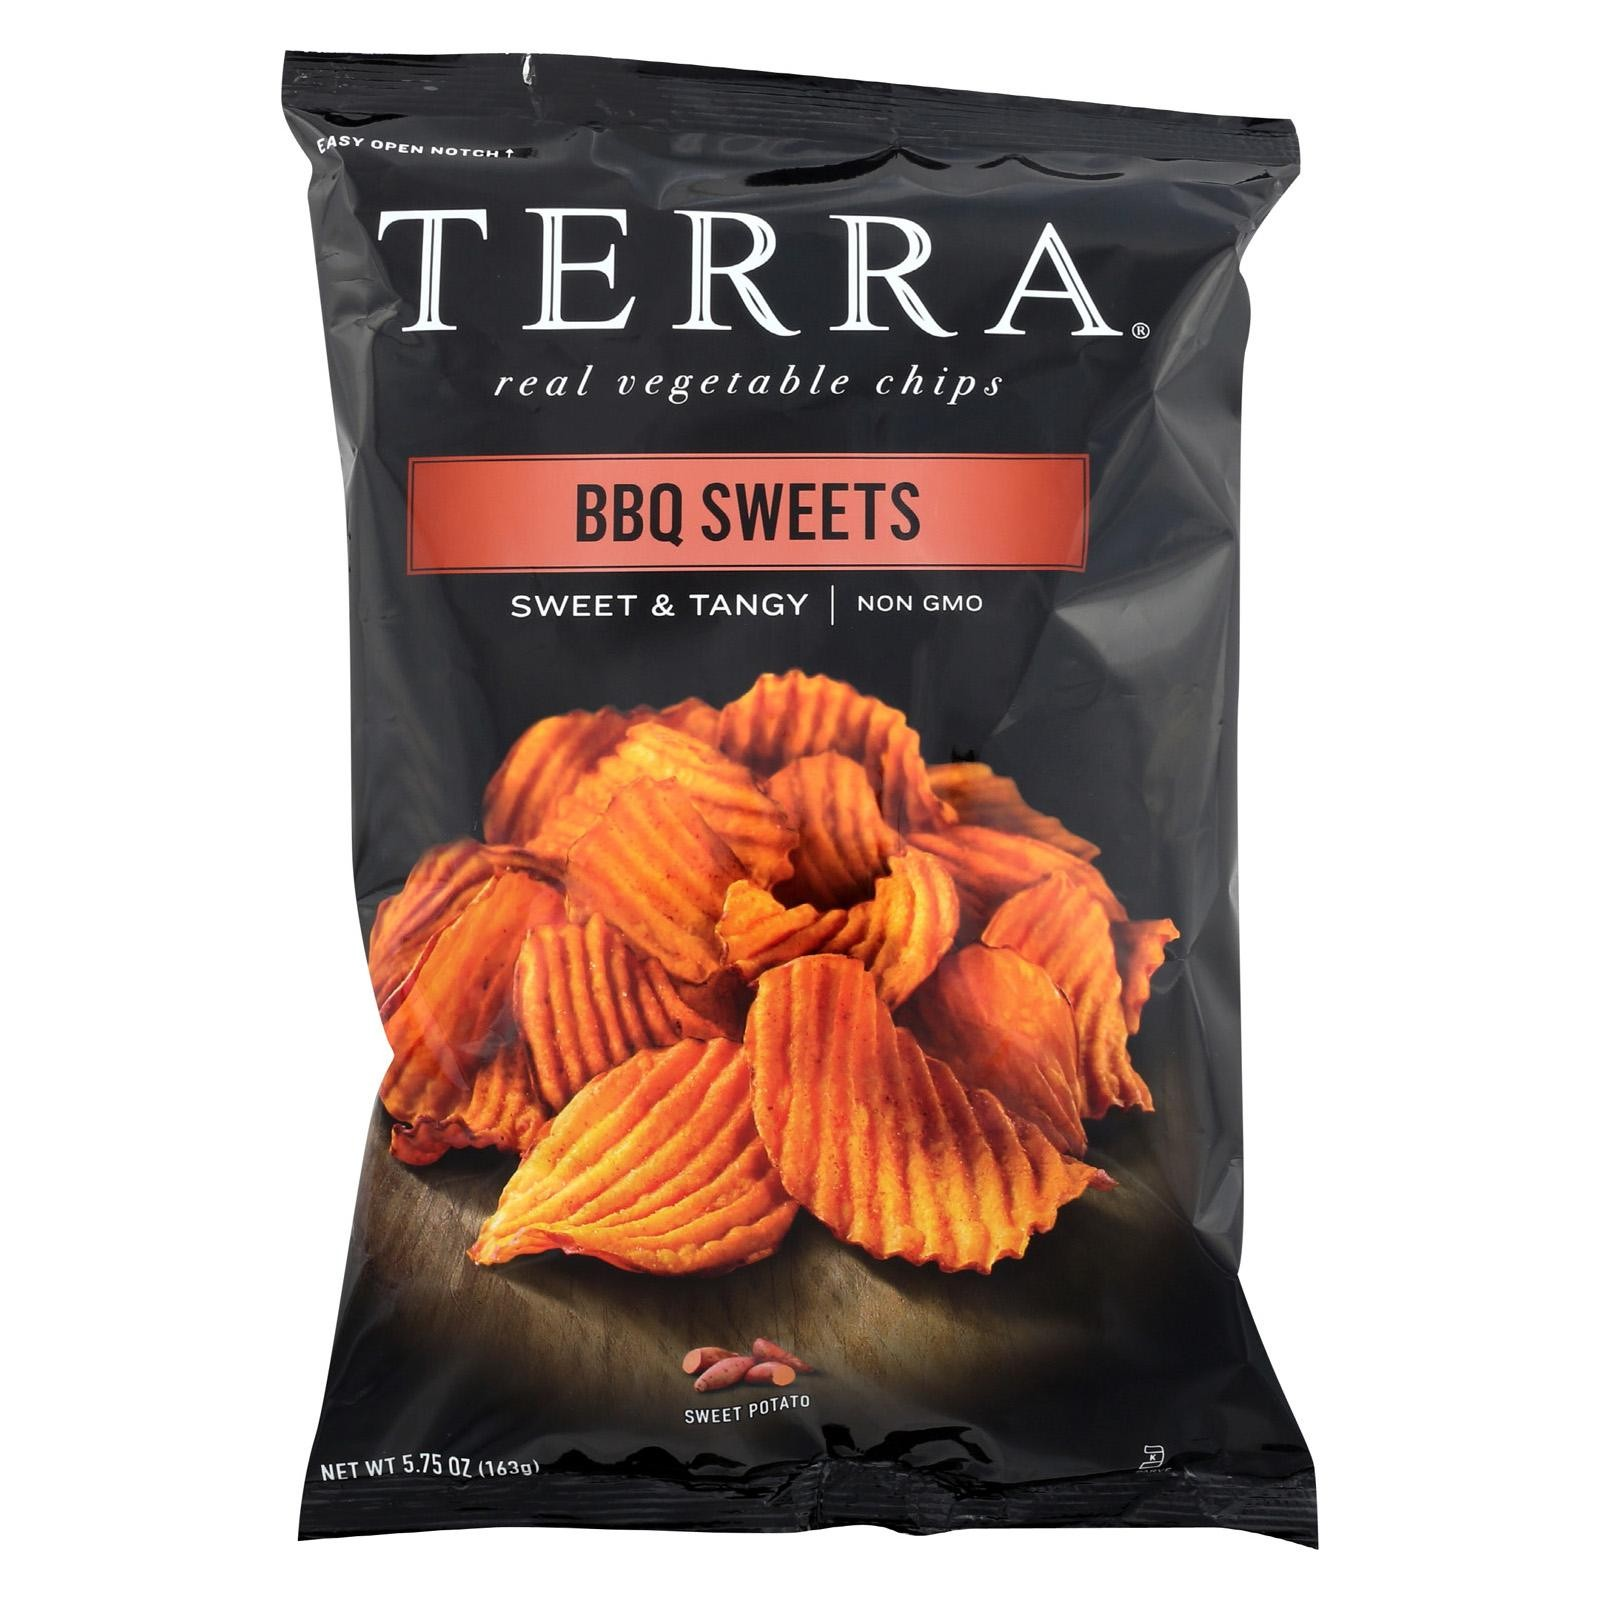 Terra Chips Sweet Potato Chips - Bbq Sweets - Pack of 12 - 5.75 Oz